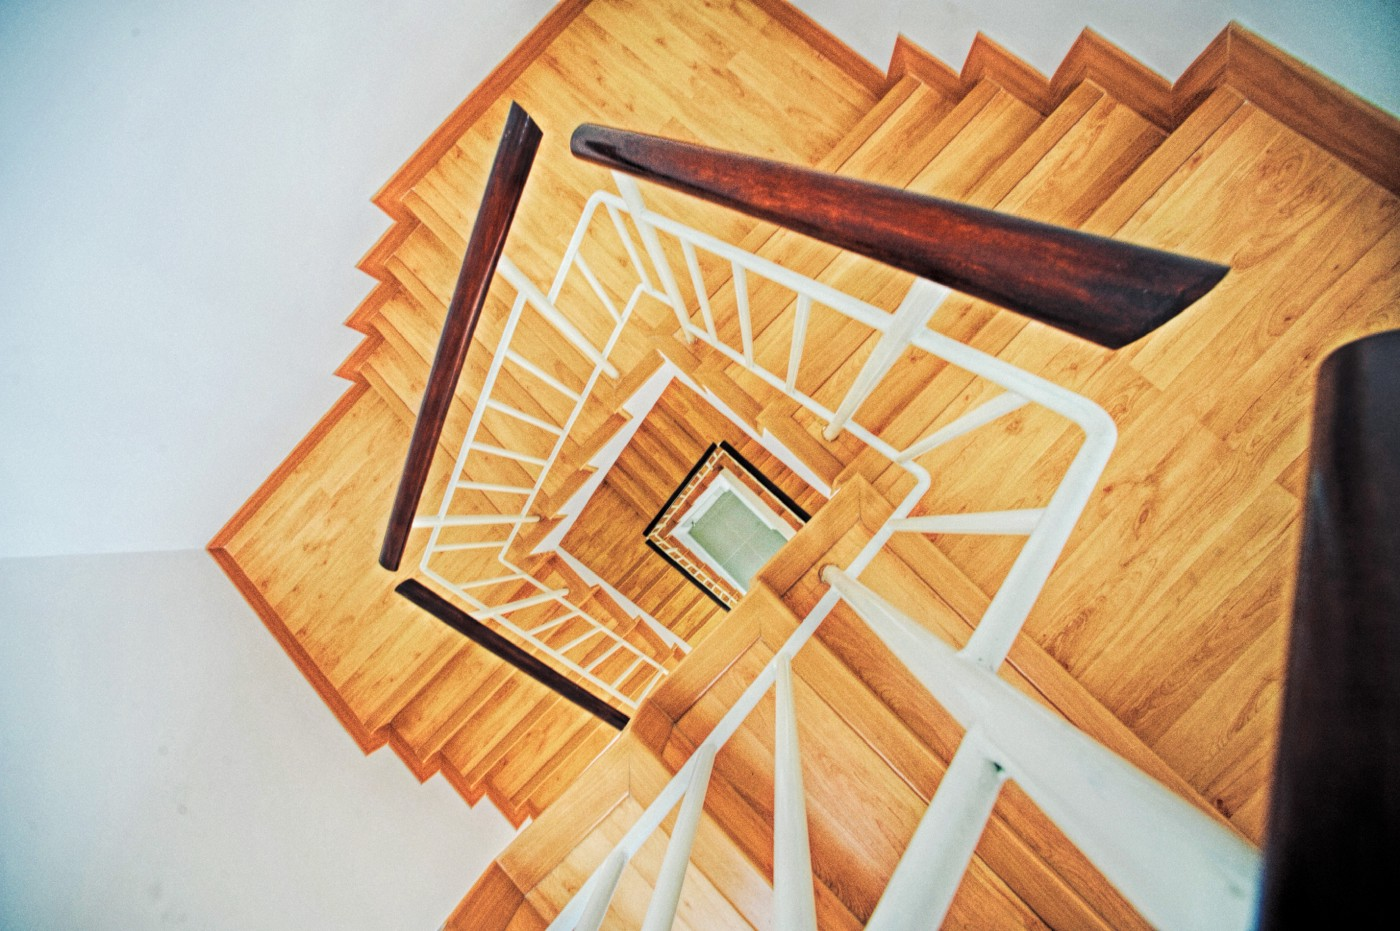 Image of never-ending stairs.